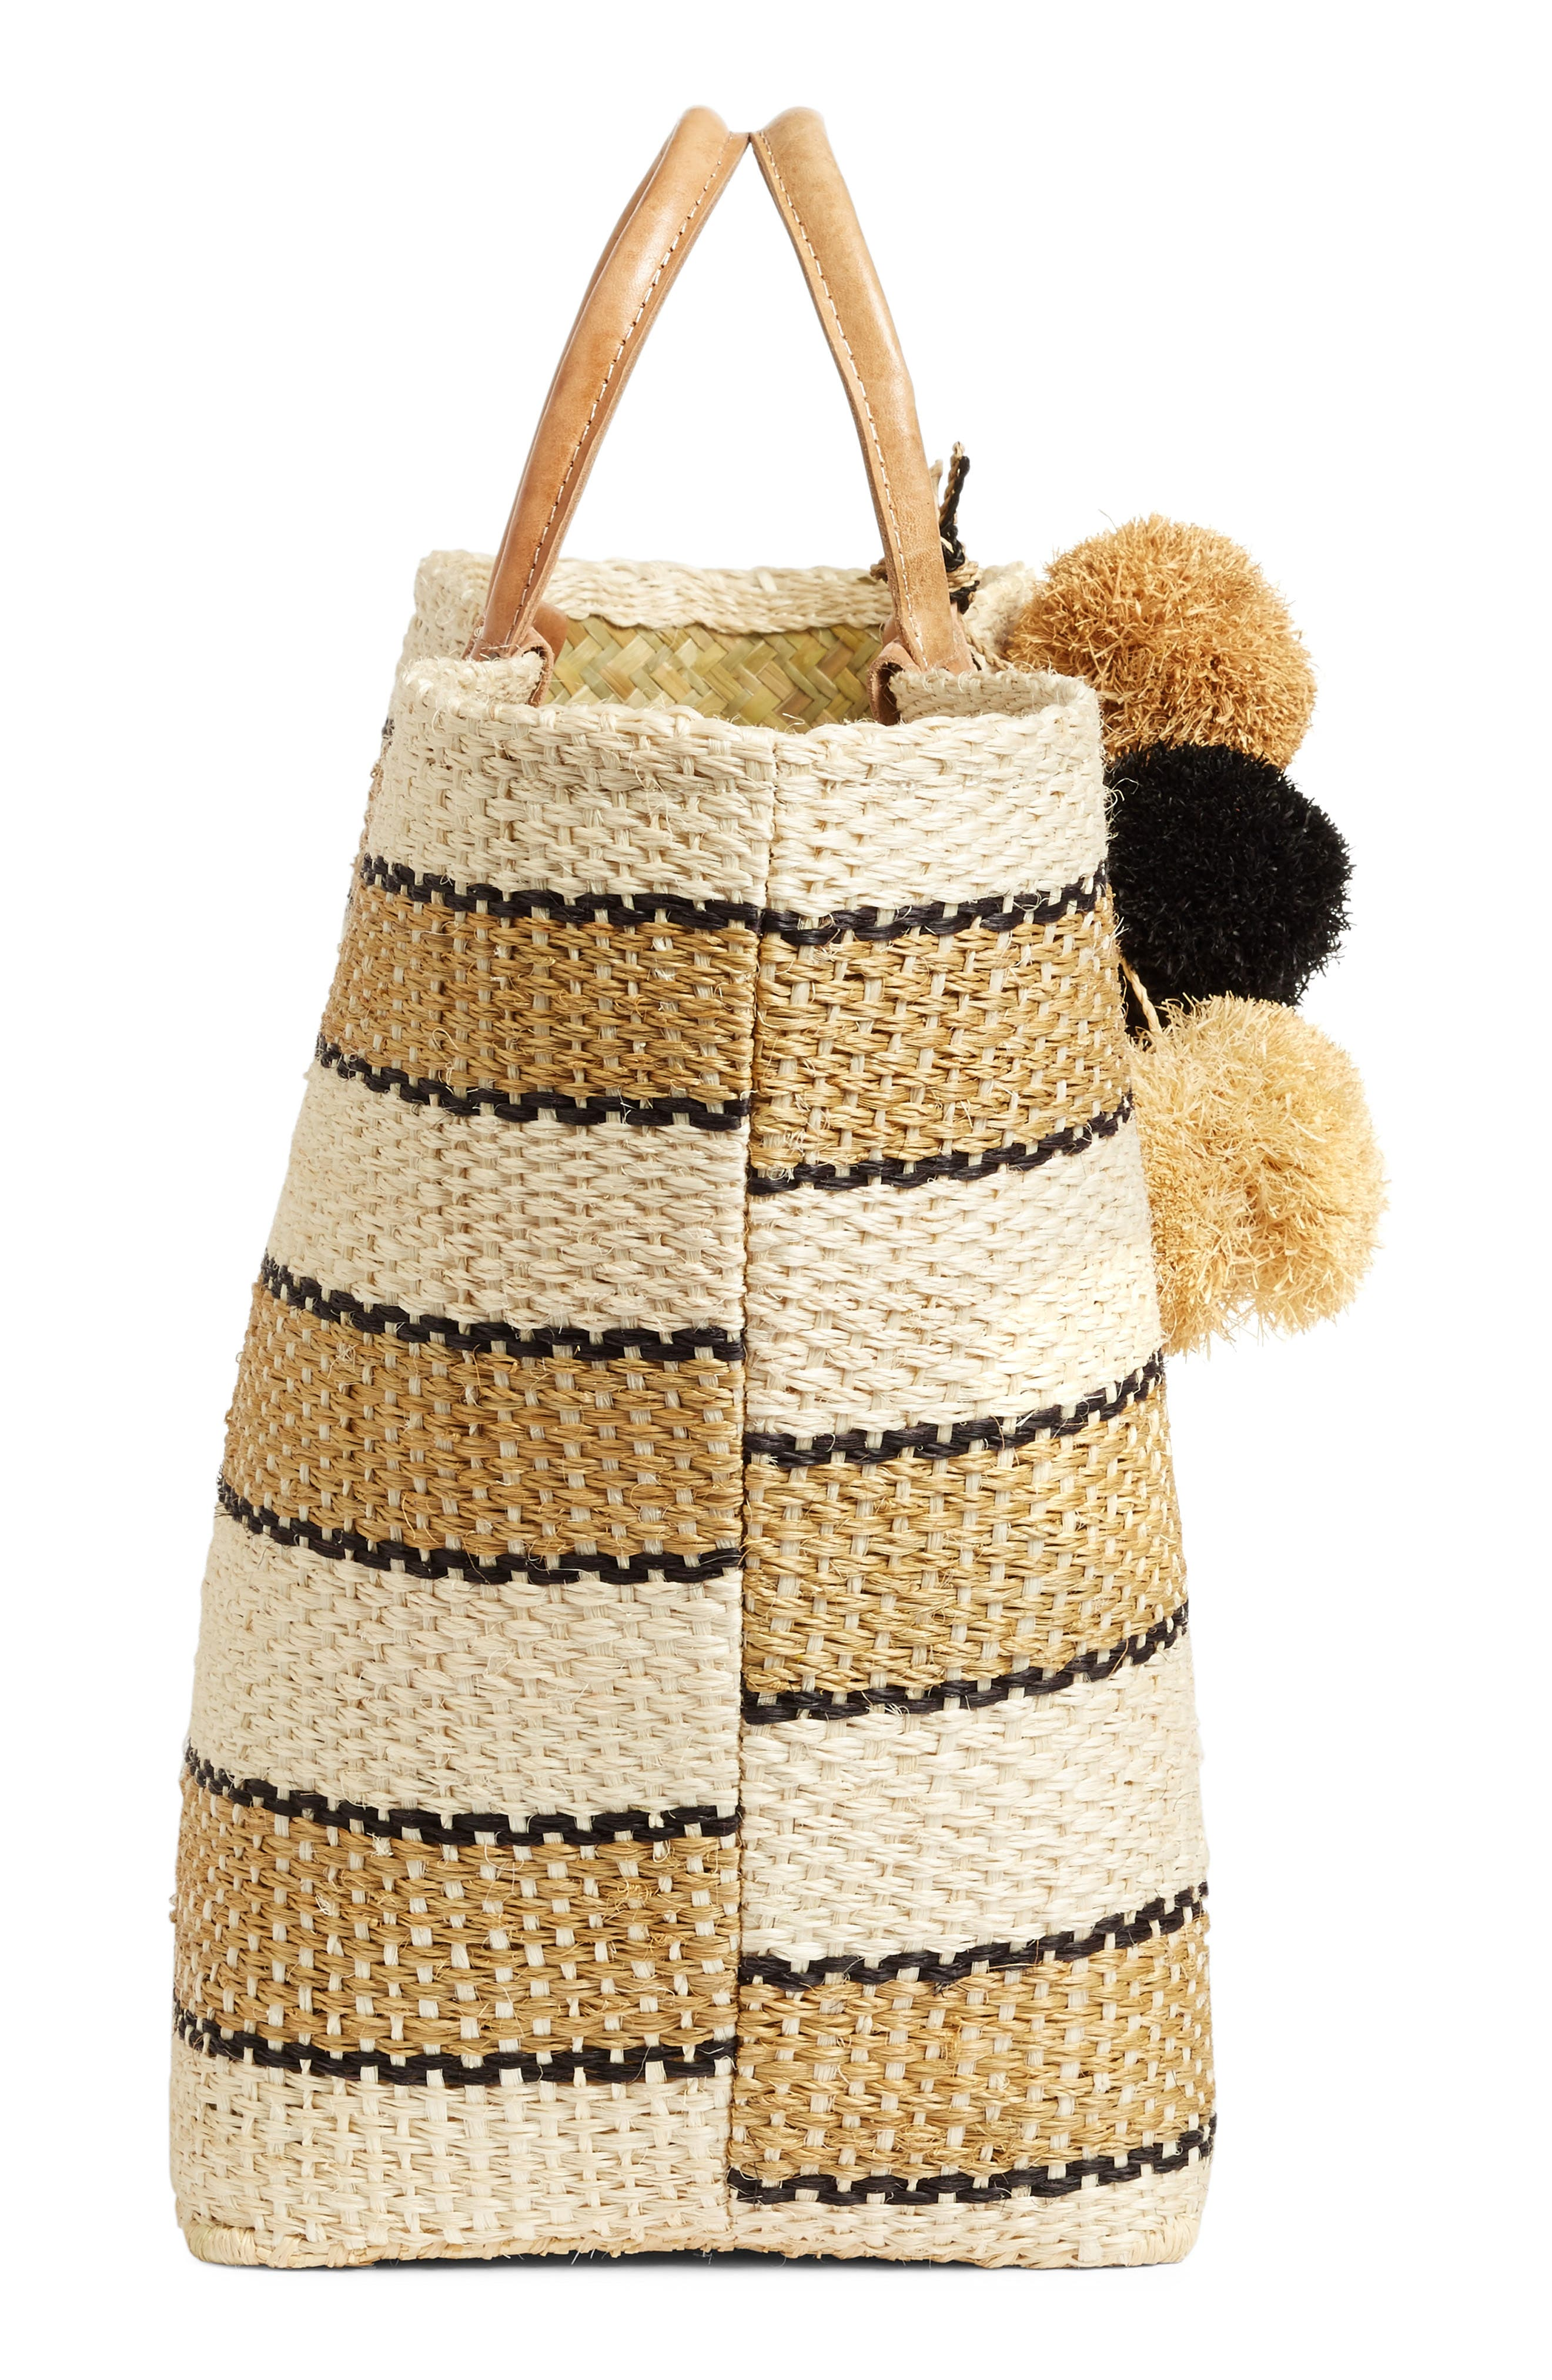 'Capri' Woven Tote with Pom Charms,                             Alternate thumbnail 5, color,                             200